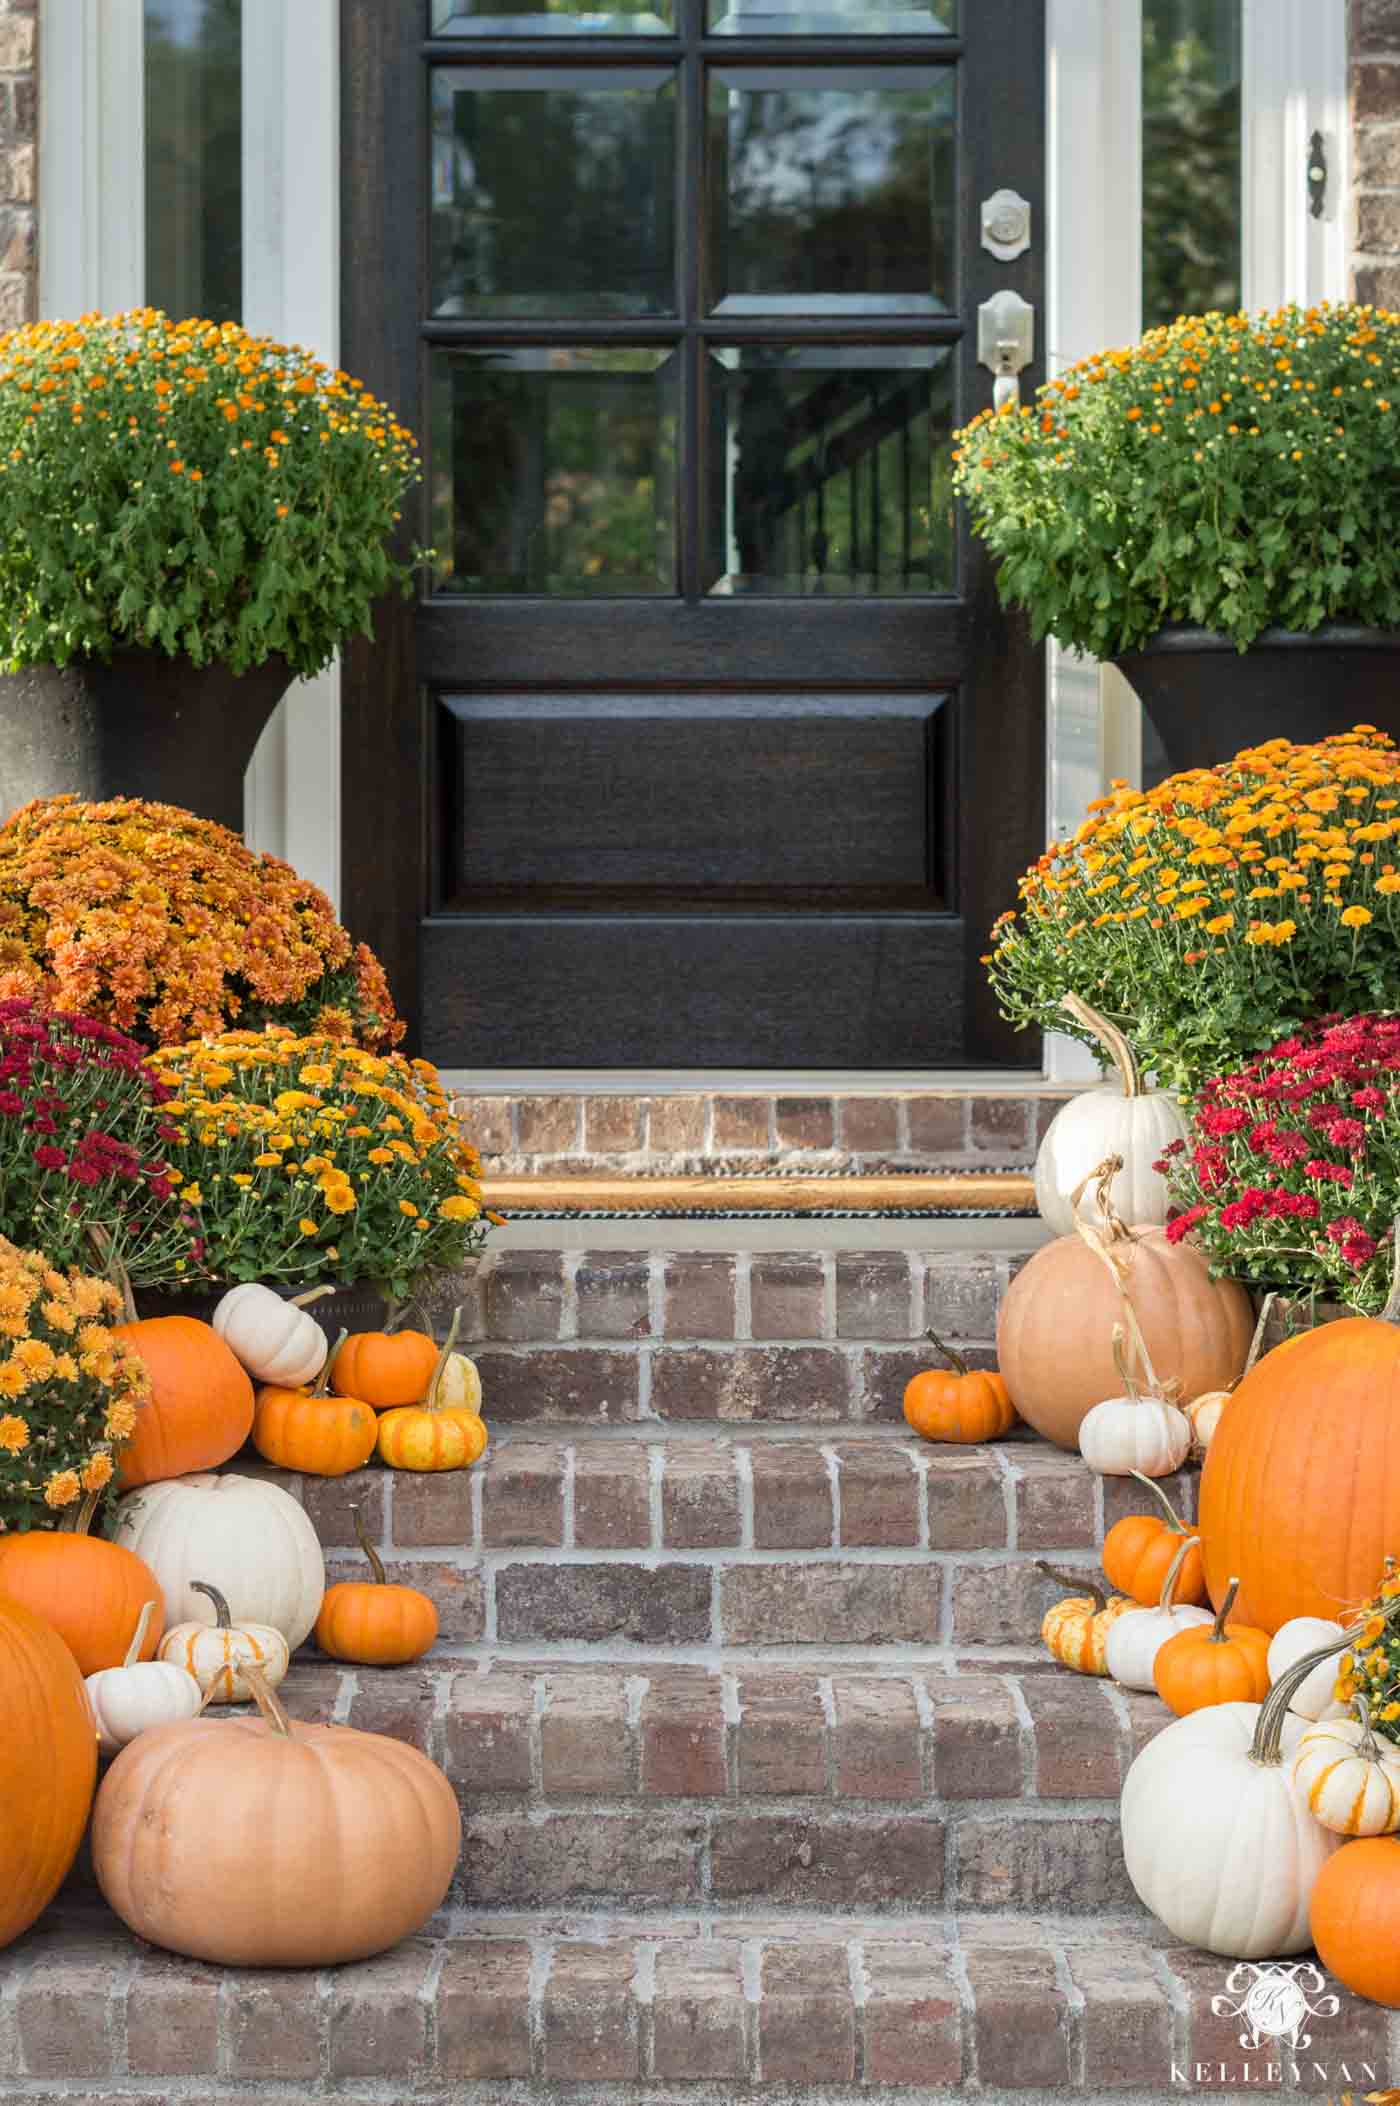 Fall porch decor with mums and pumpkins